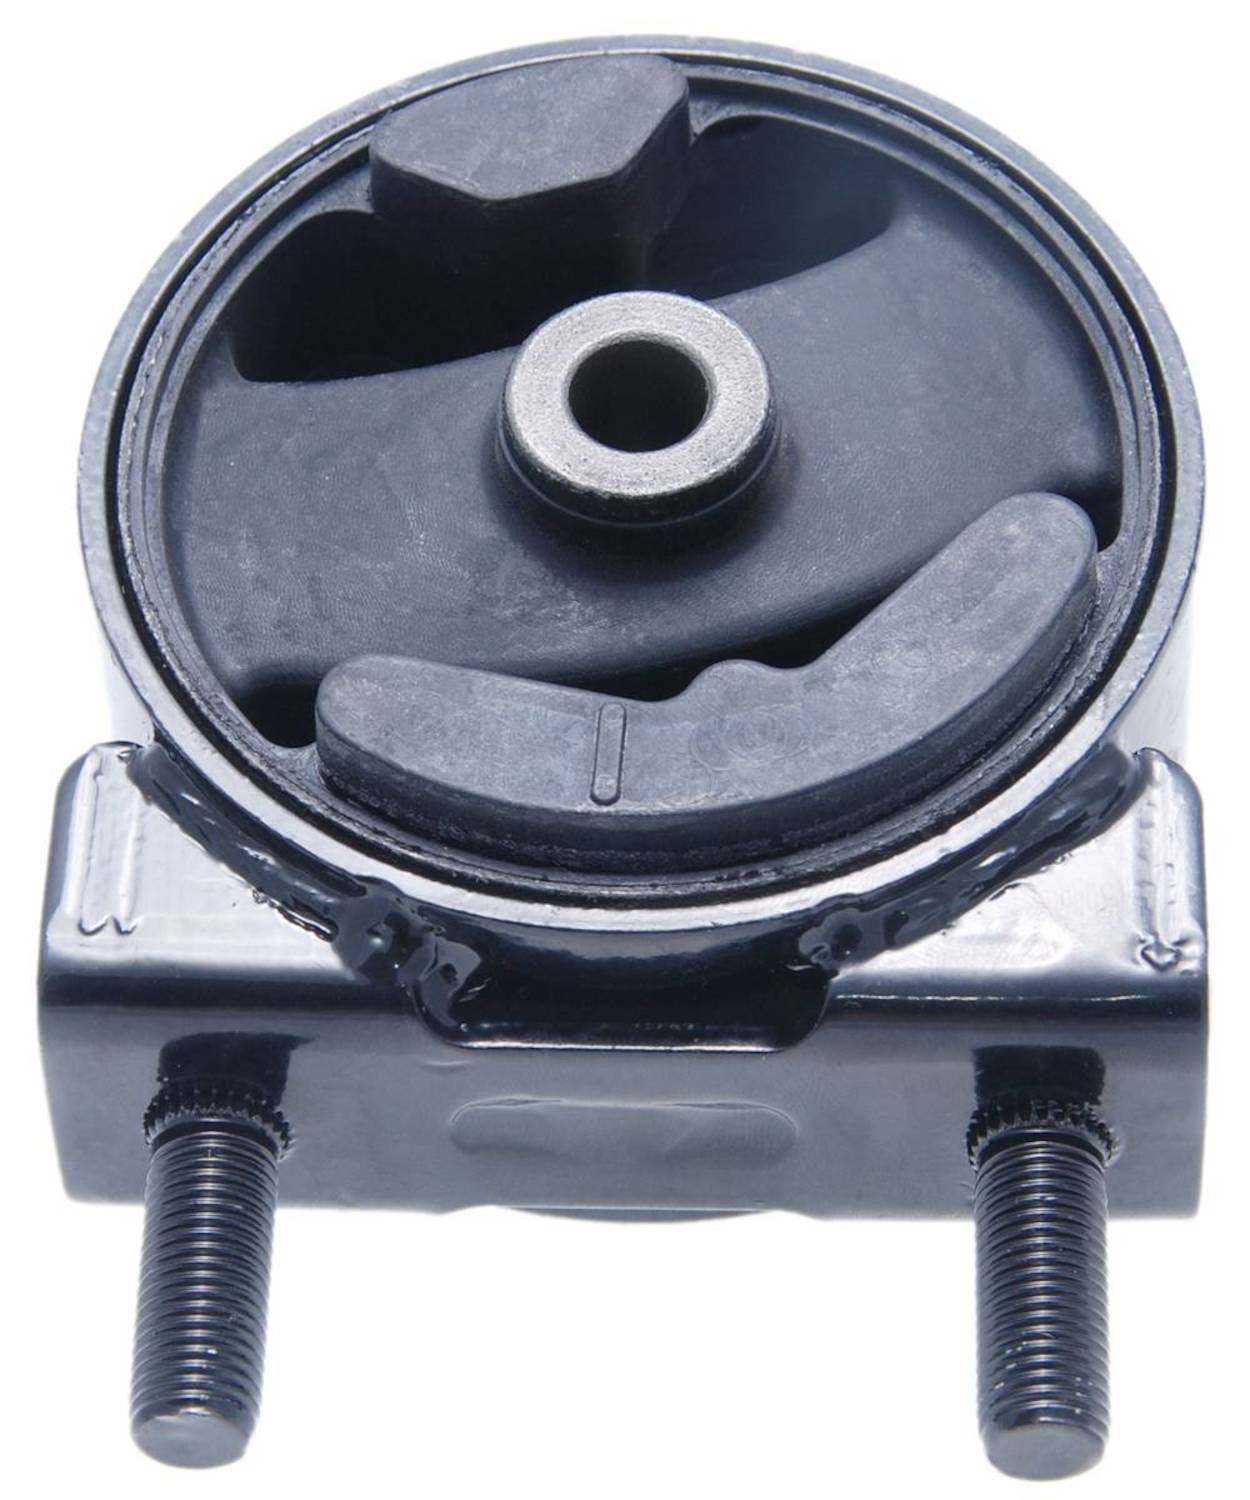 engine torque damper for 2003 suzuki aerio usa ebay. Black Bedroom Furniture Sets. Home Design Ideas